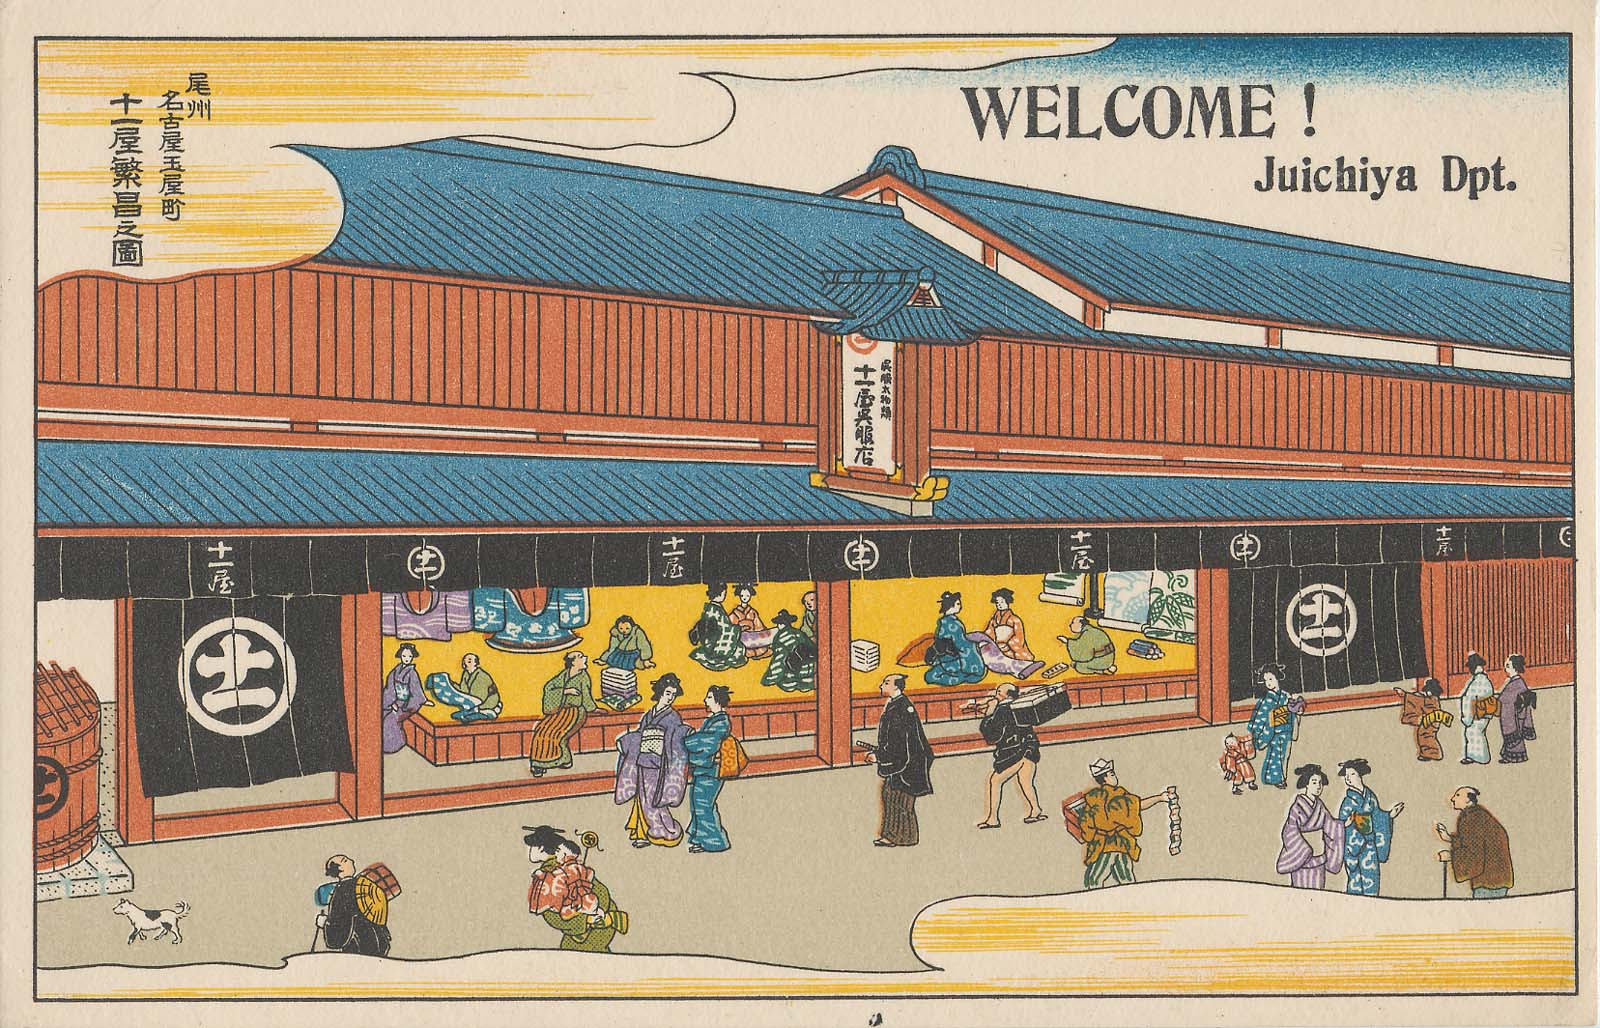 Advertisement for Juichiya Department Store, late Meiji era. Leonard A. Lauder Collection of Japanese Postcards, Museum of Fine Arts, Boston.